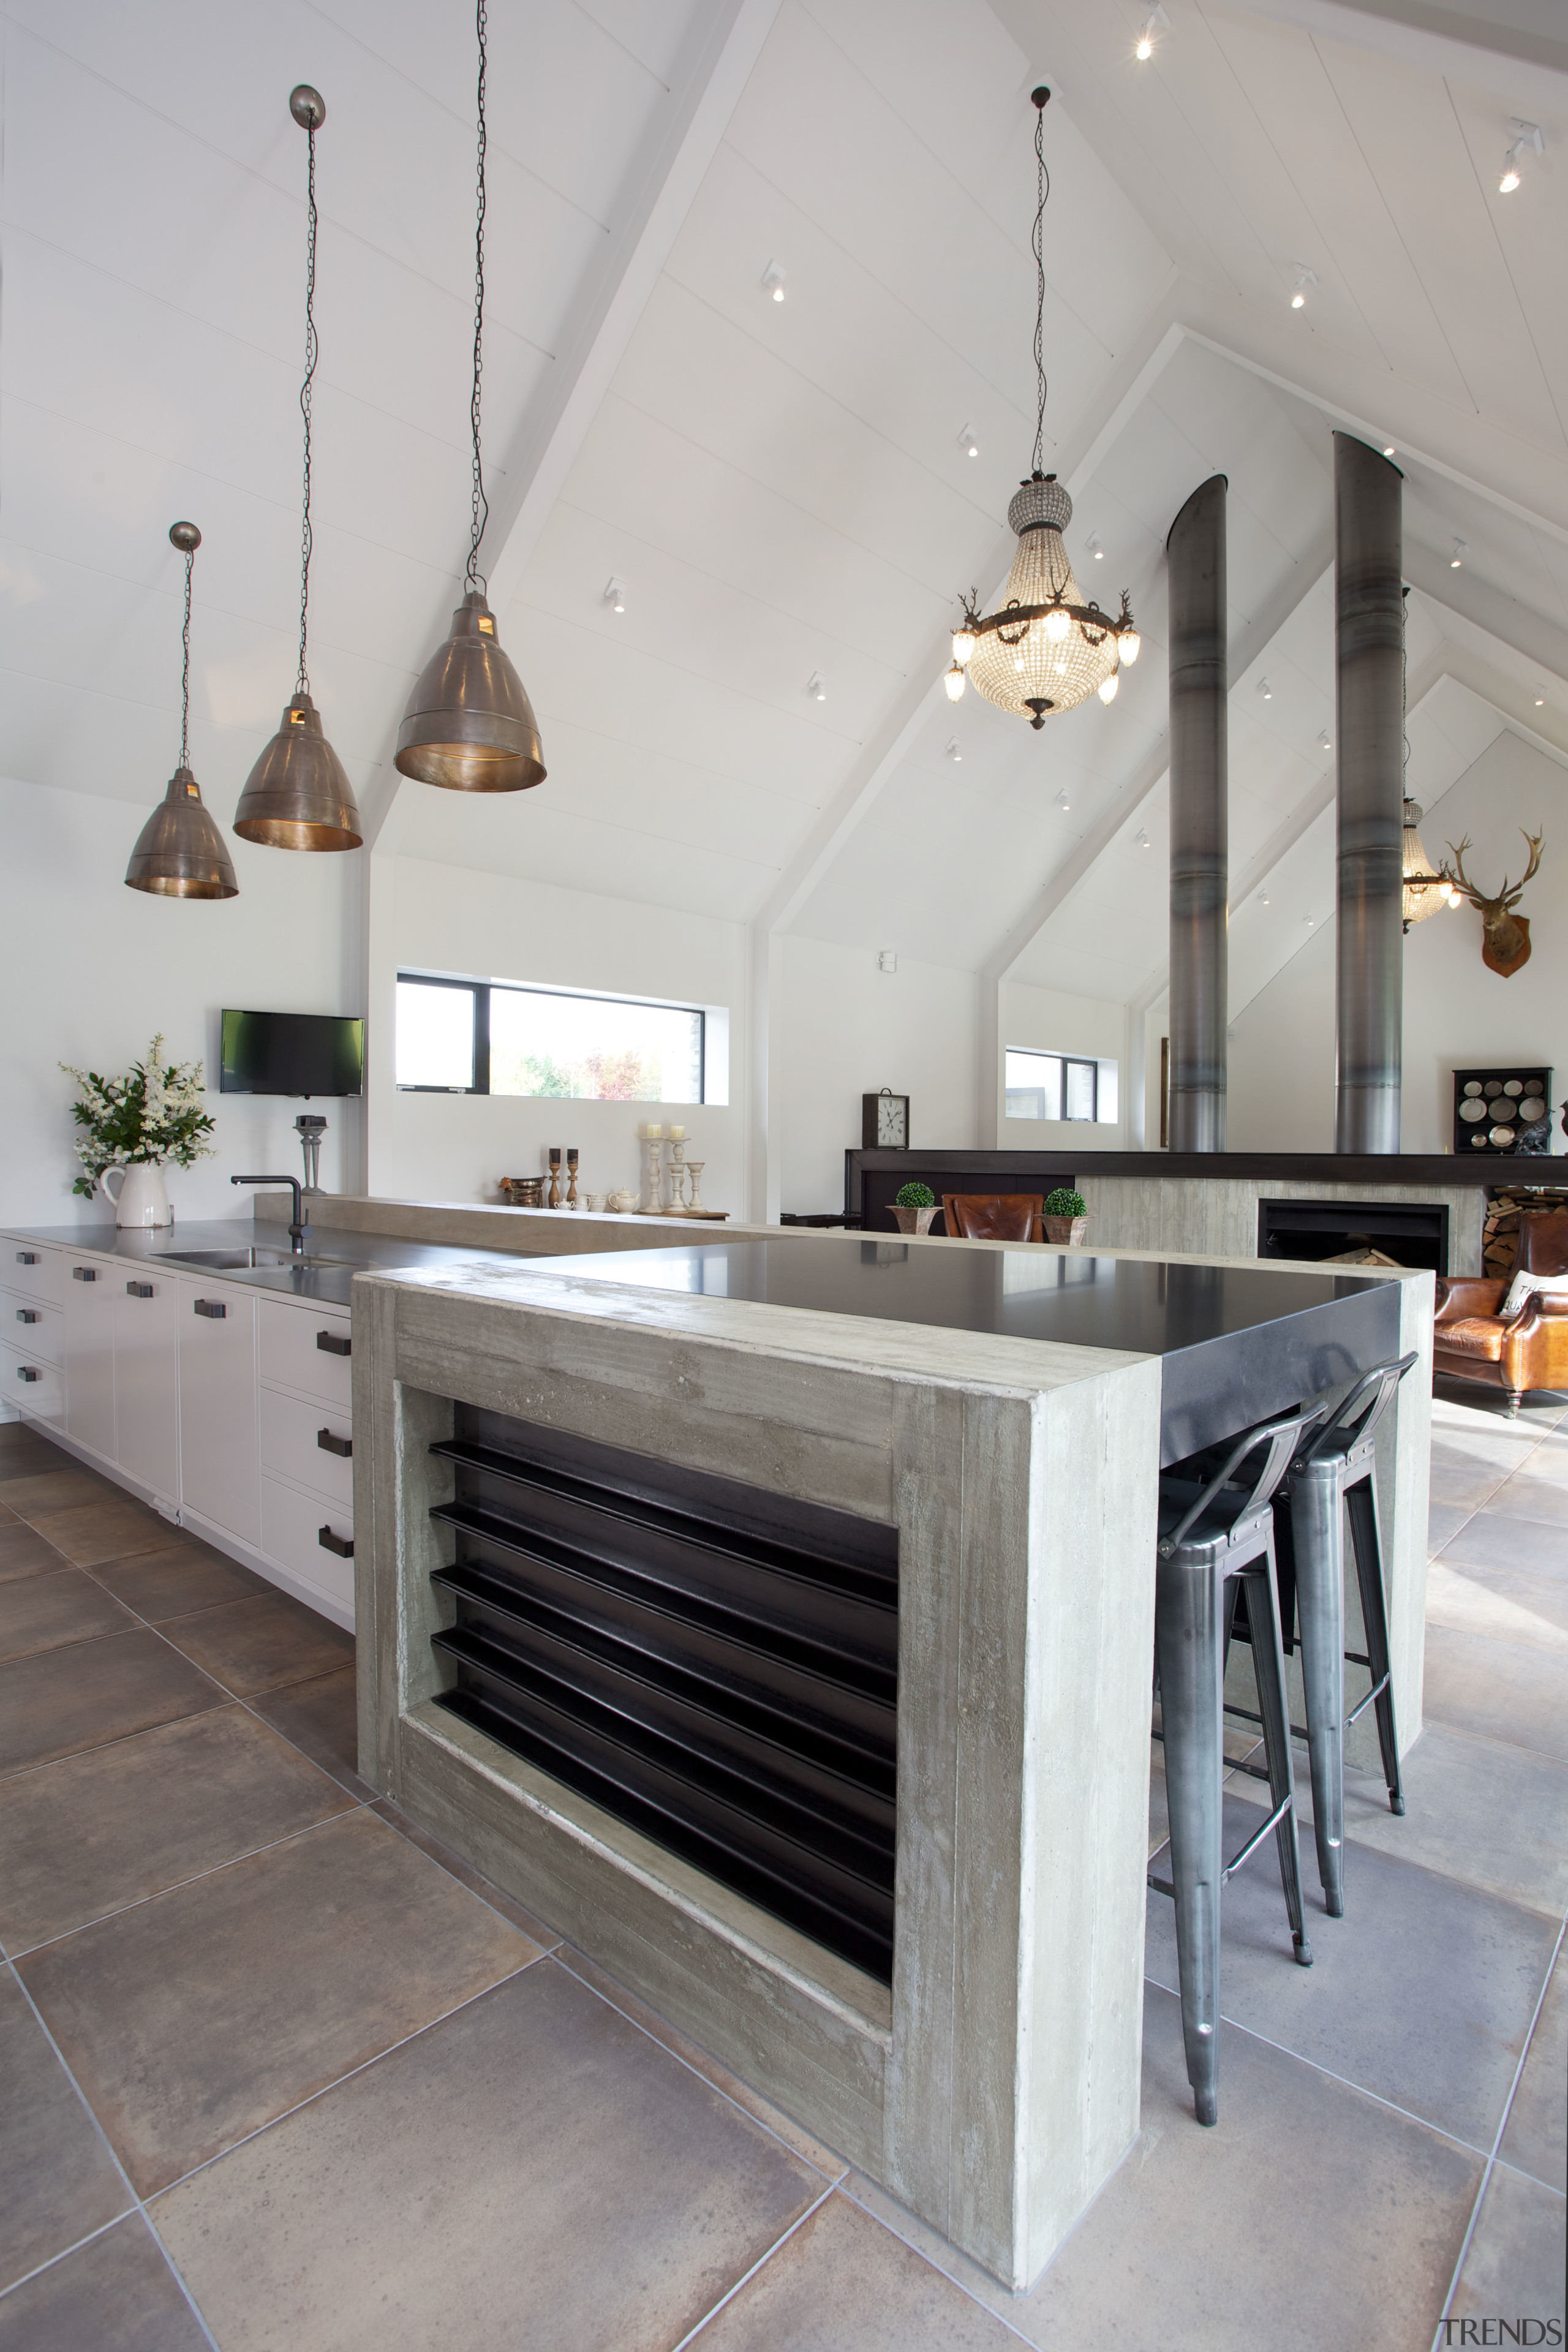 This kitchen is positioned in the heart of countertop, flooring, interior design, kitchen, table, gray